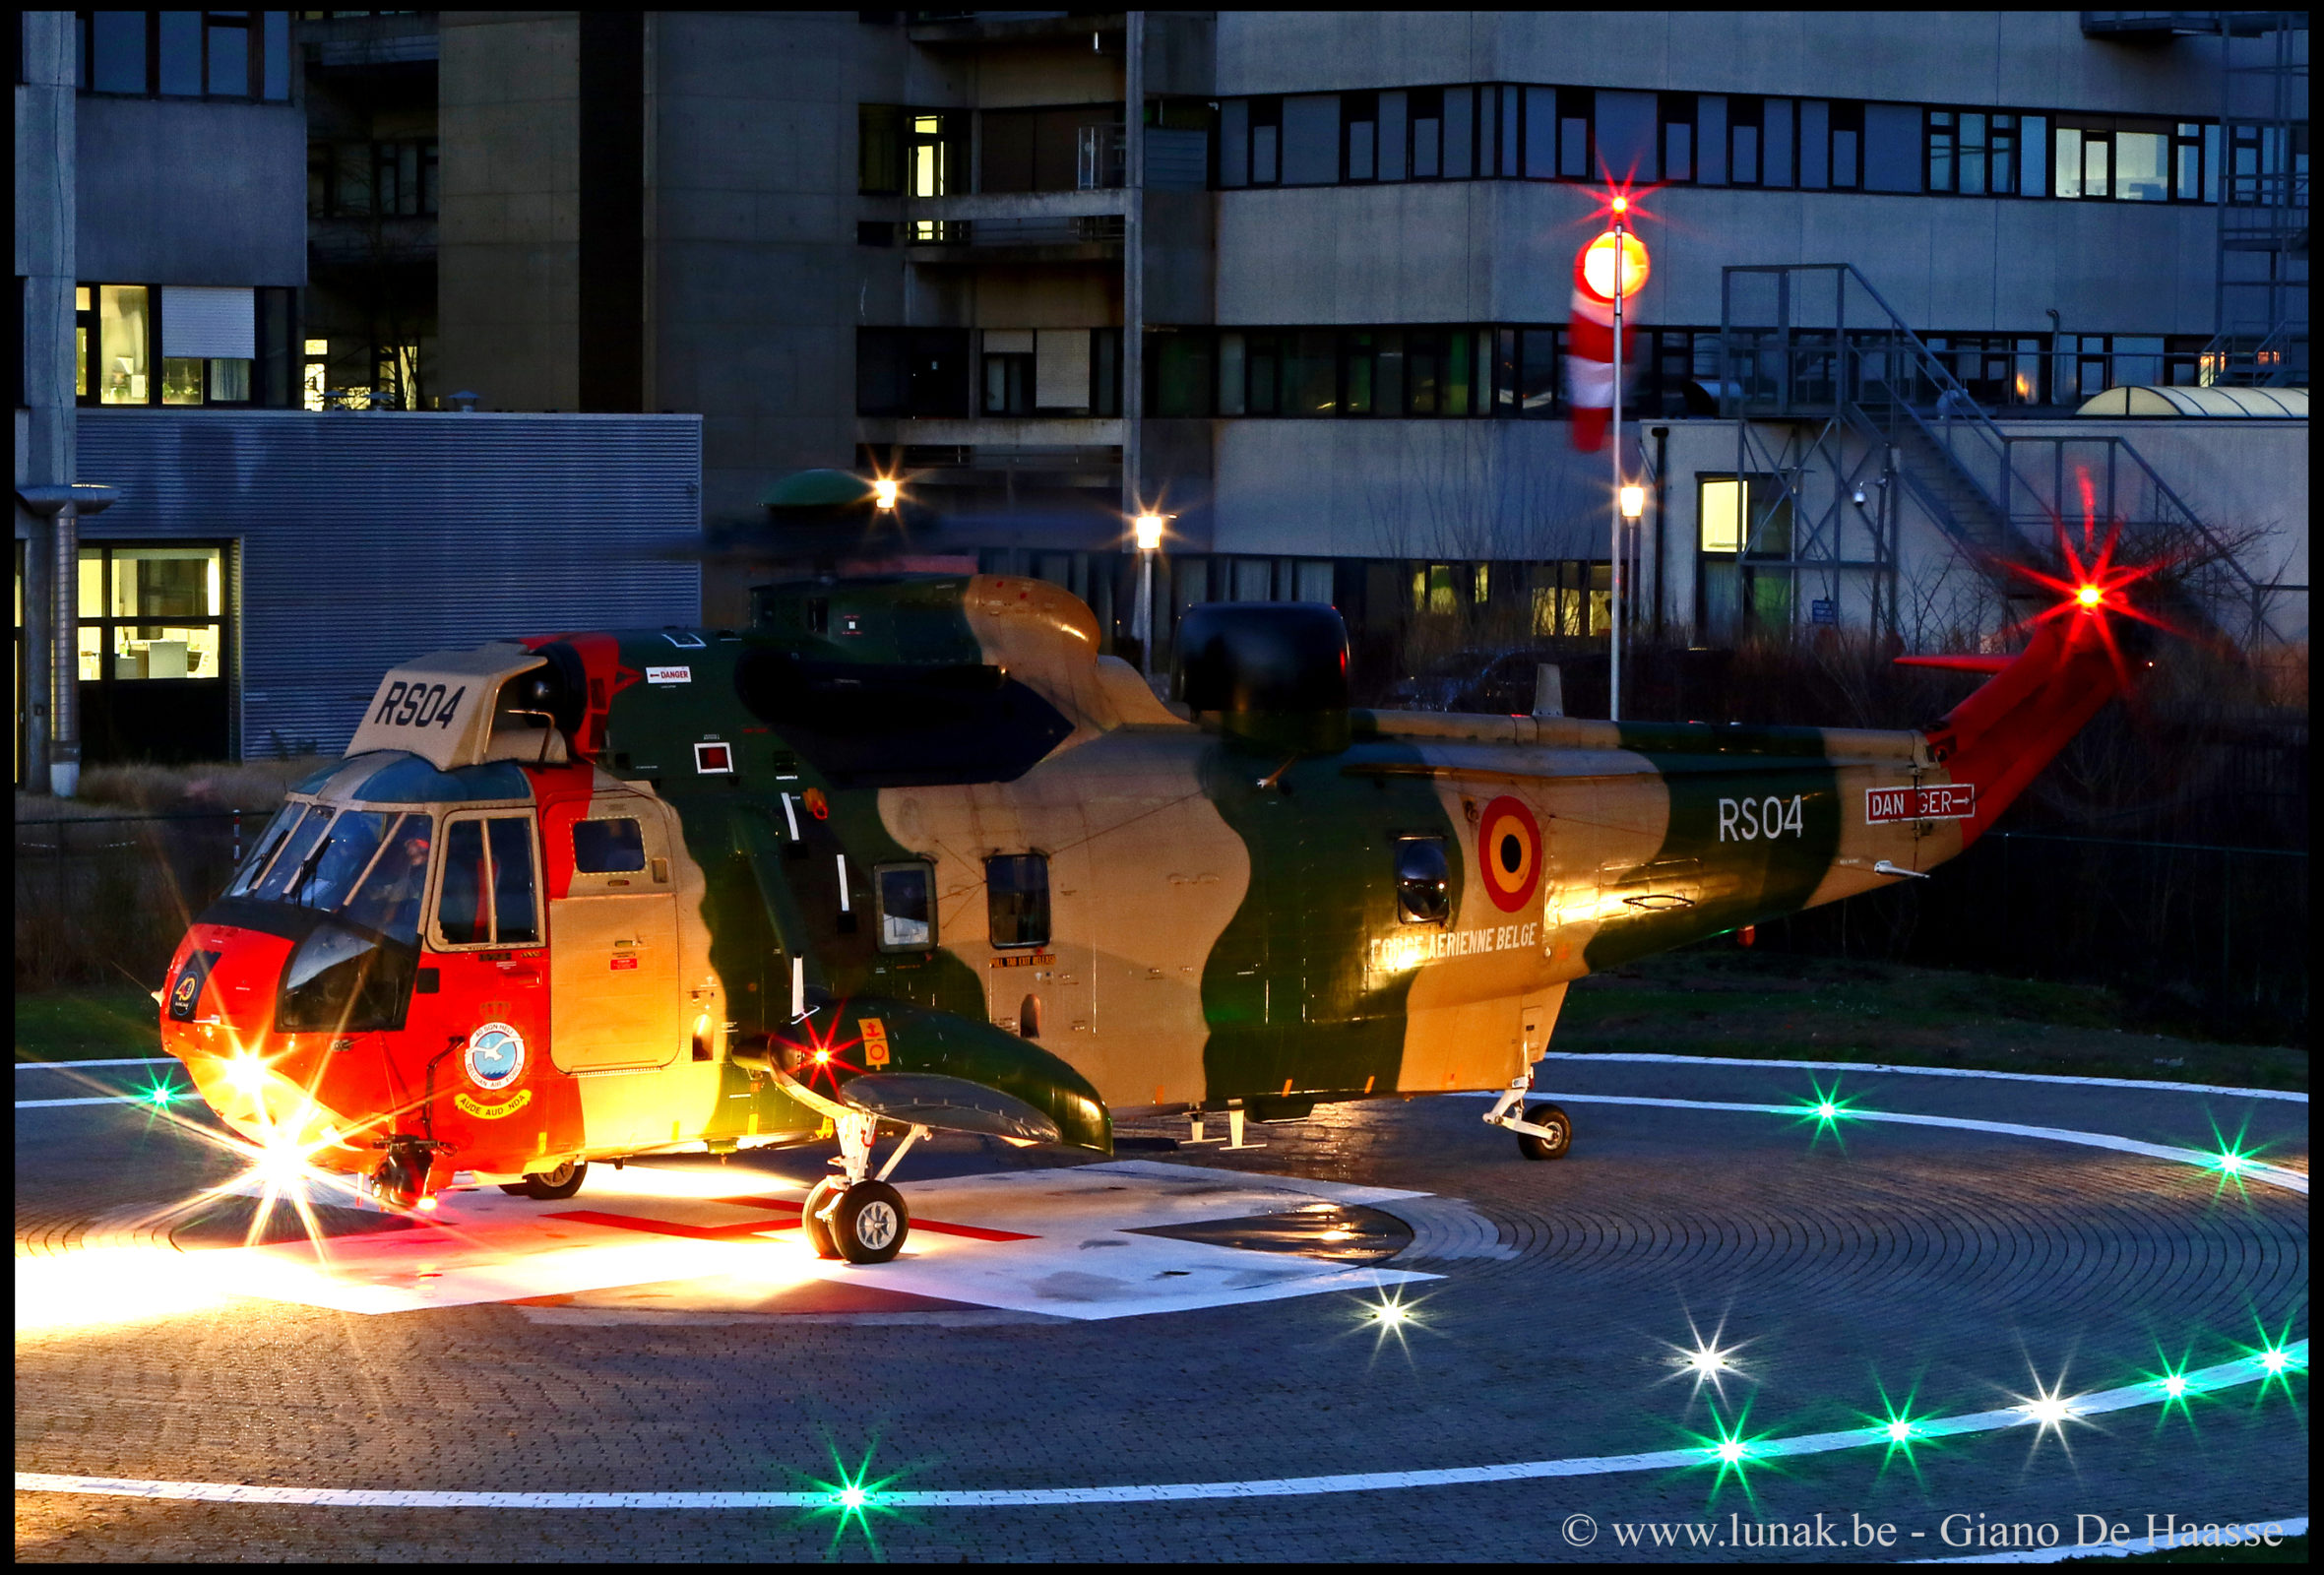 helicopter at dusk with internally lighted windsock assembly in the background next to the hospital.